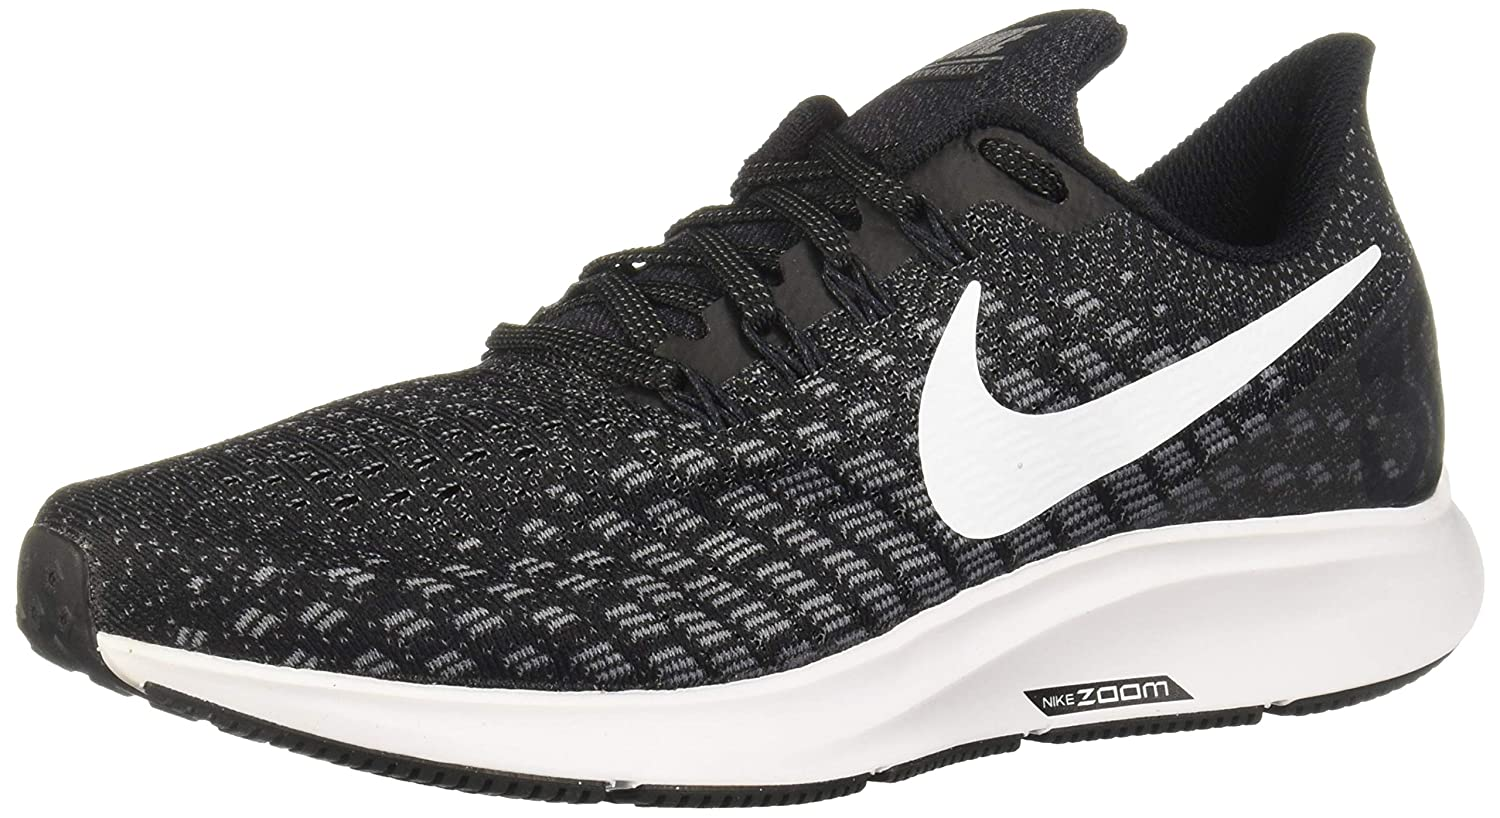 timeless design 6b2df 787b3 Nike Women's Air Zoom Pegasus 35 Running Shoes